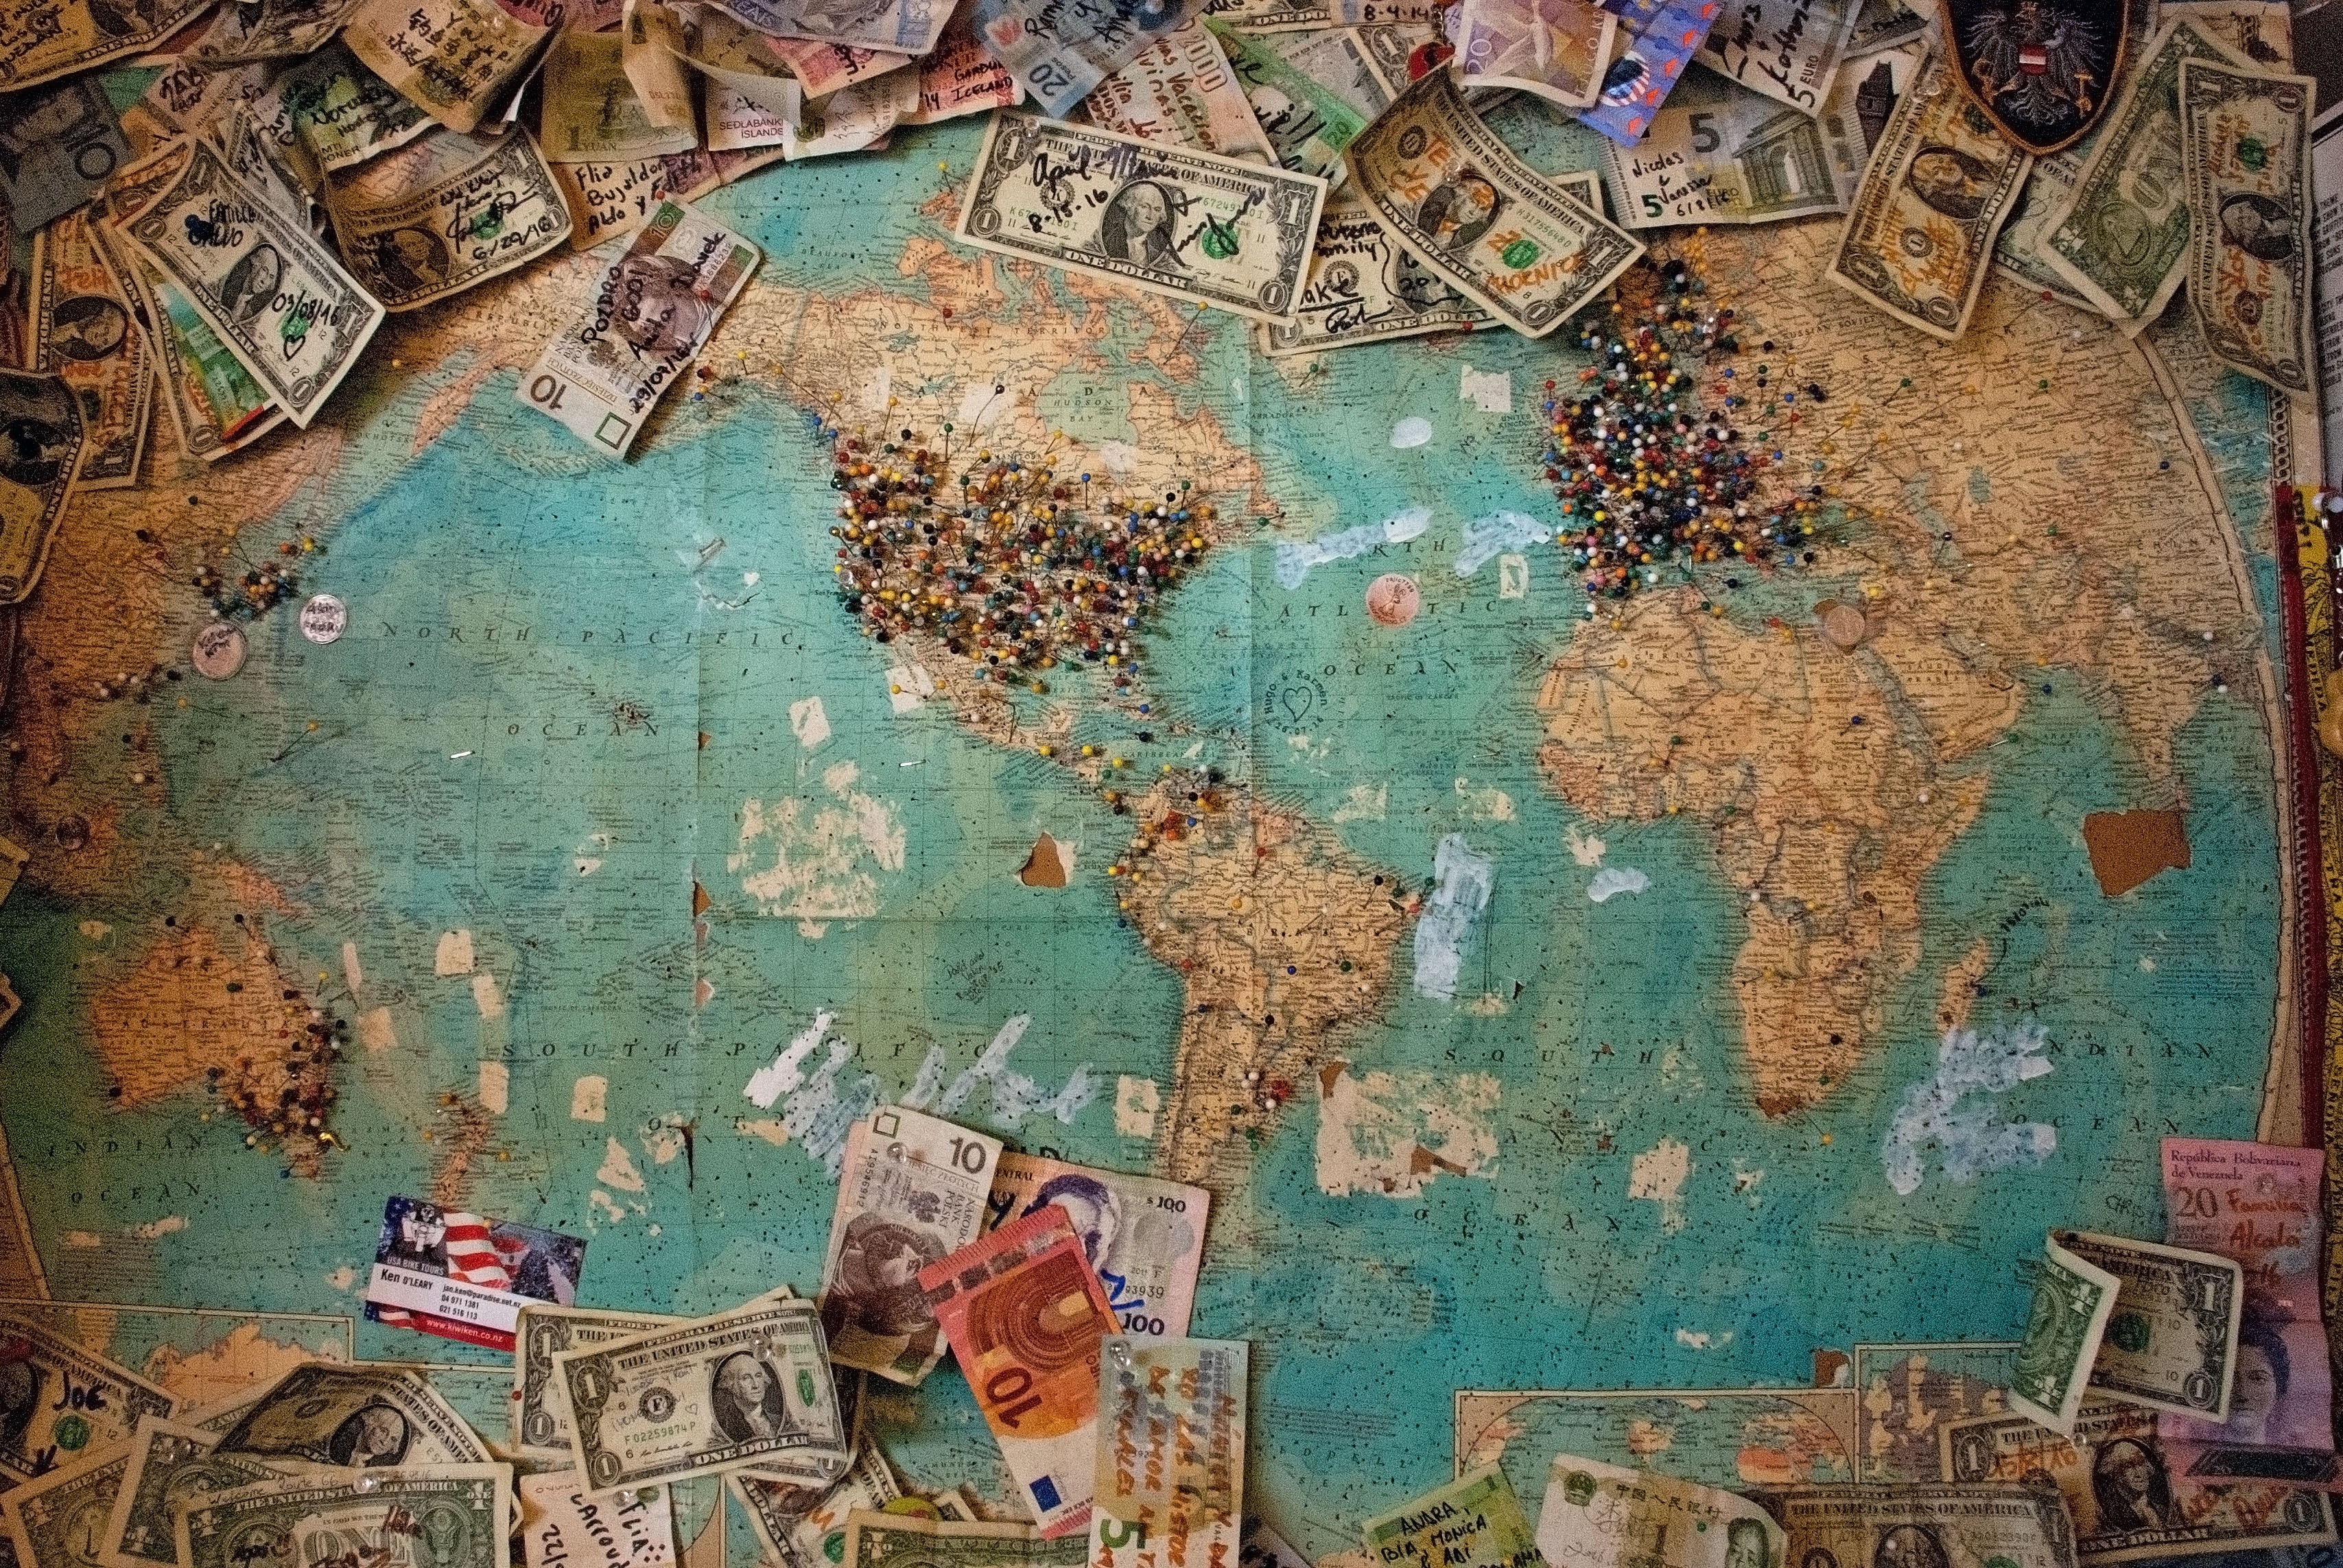 Image of a map with various currencies